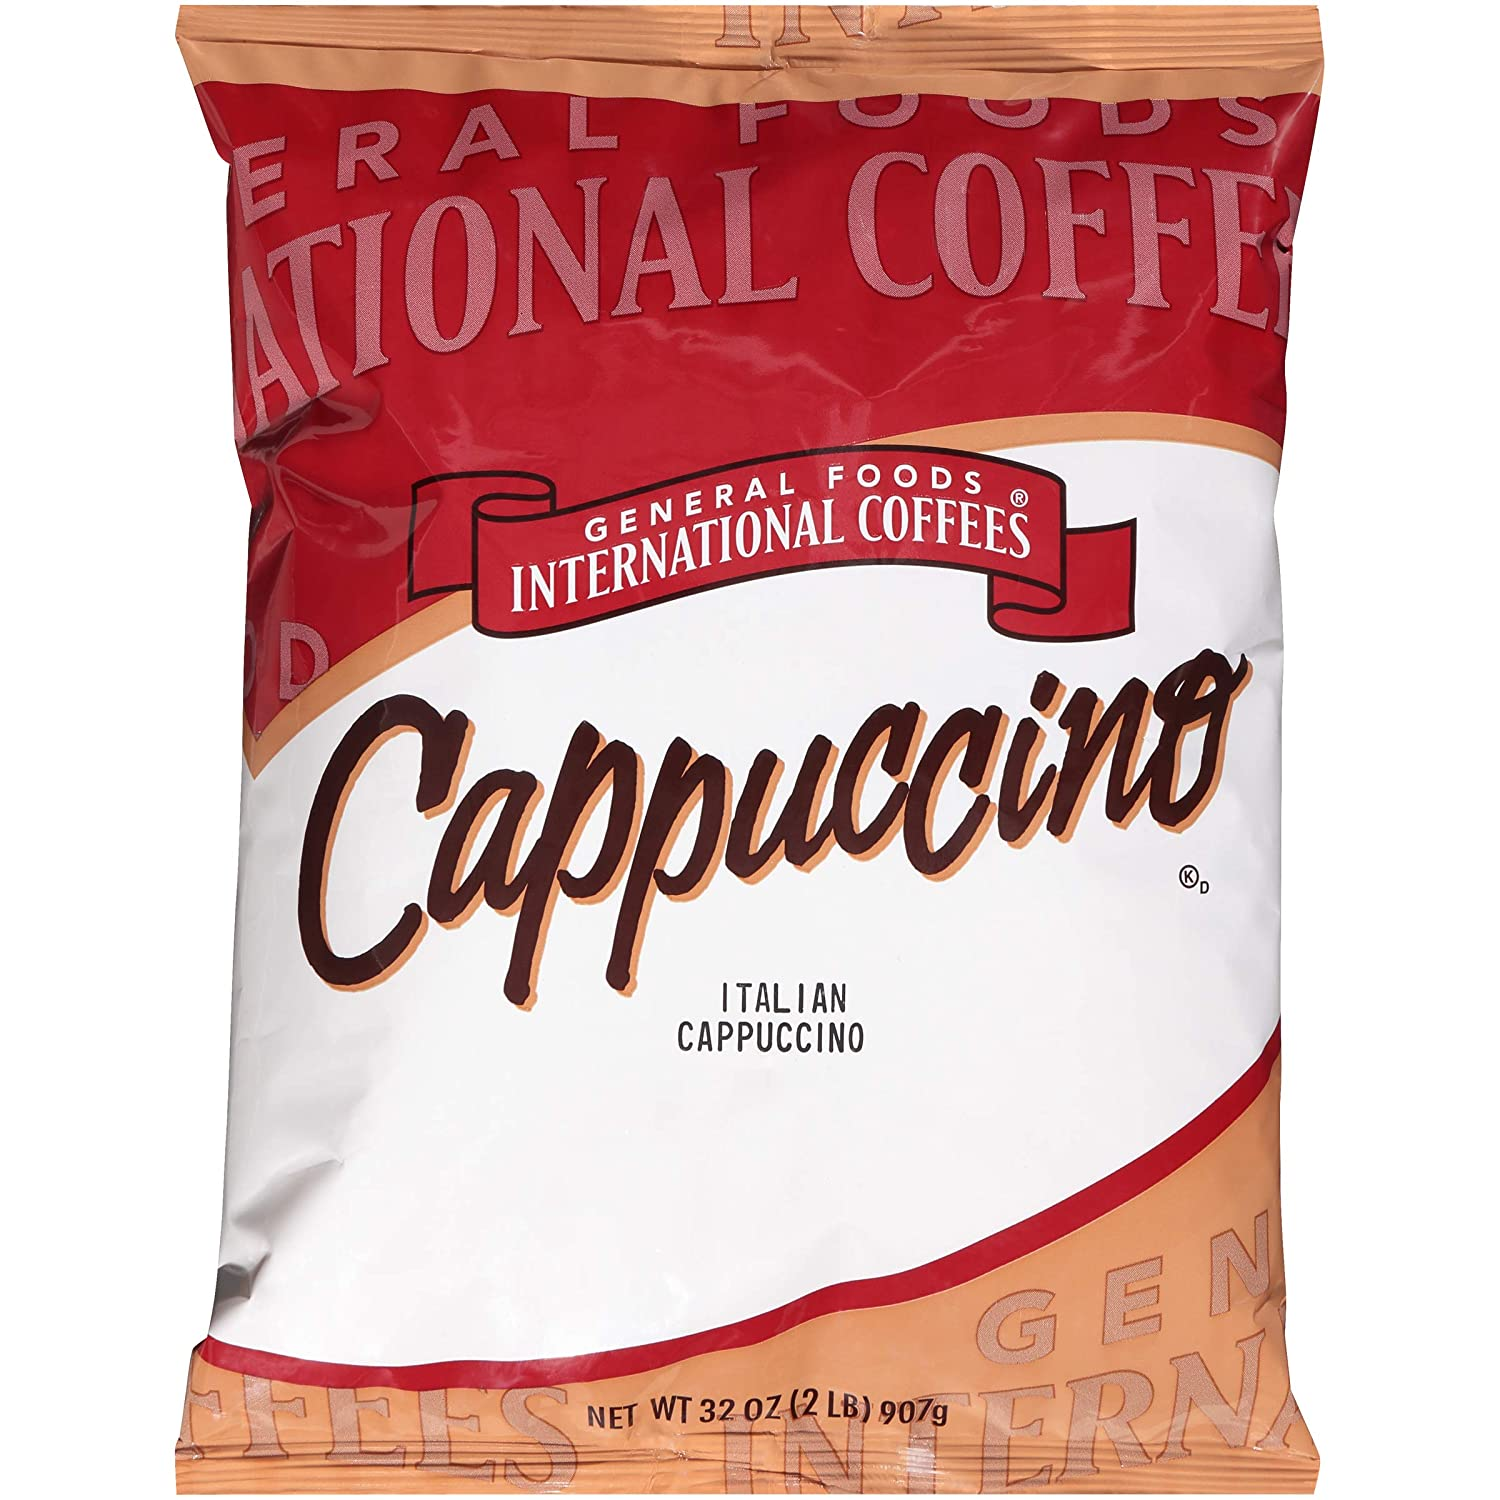 General Foods Italian Cappuccino Instant Coffee Mix (2lb Bags, Pack of 6)